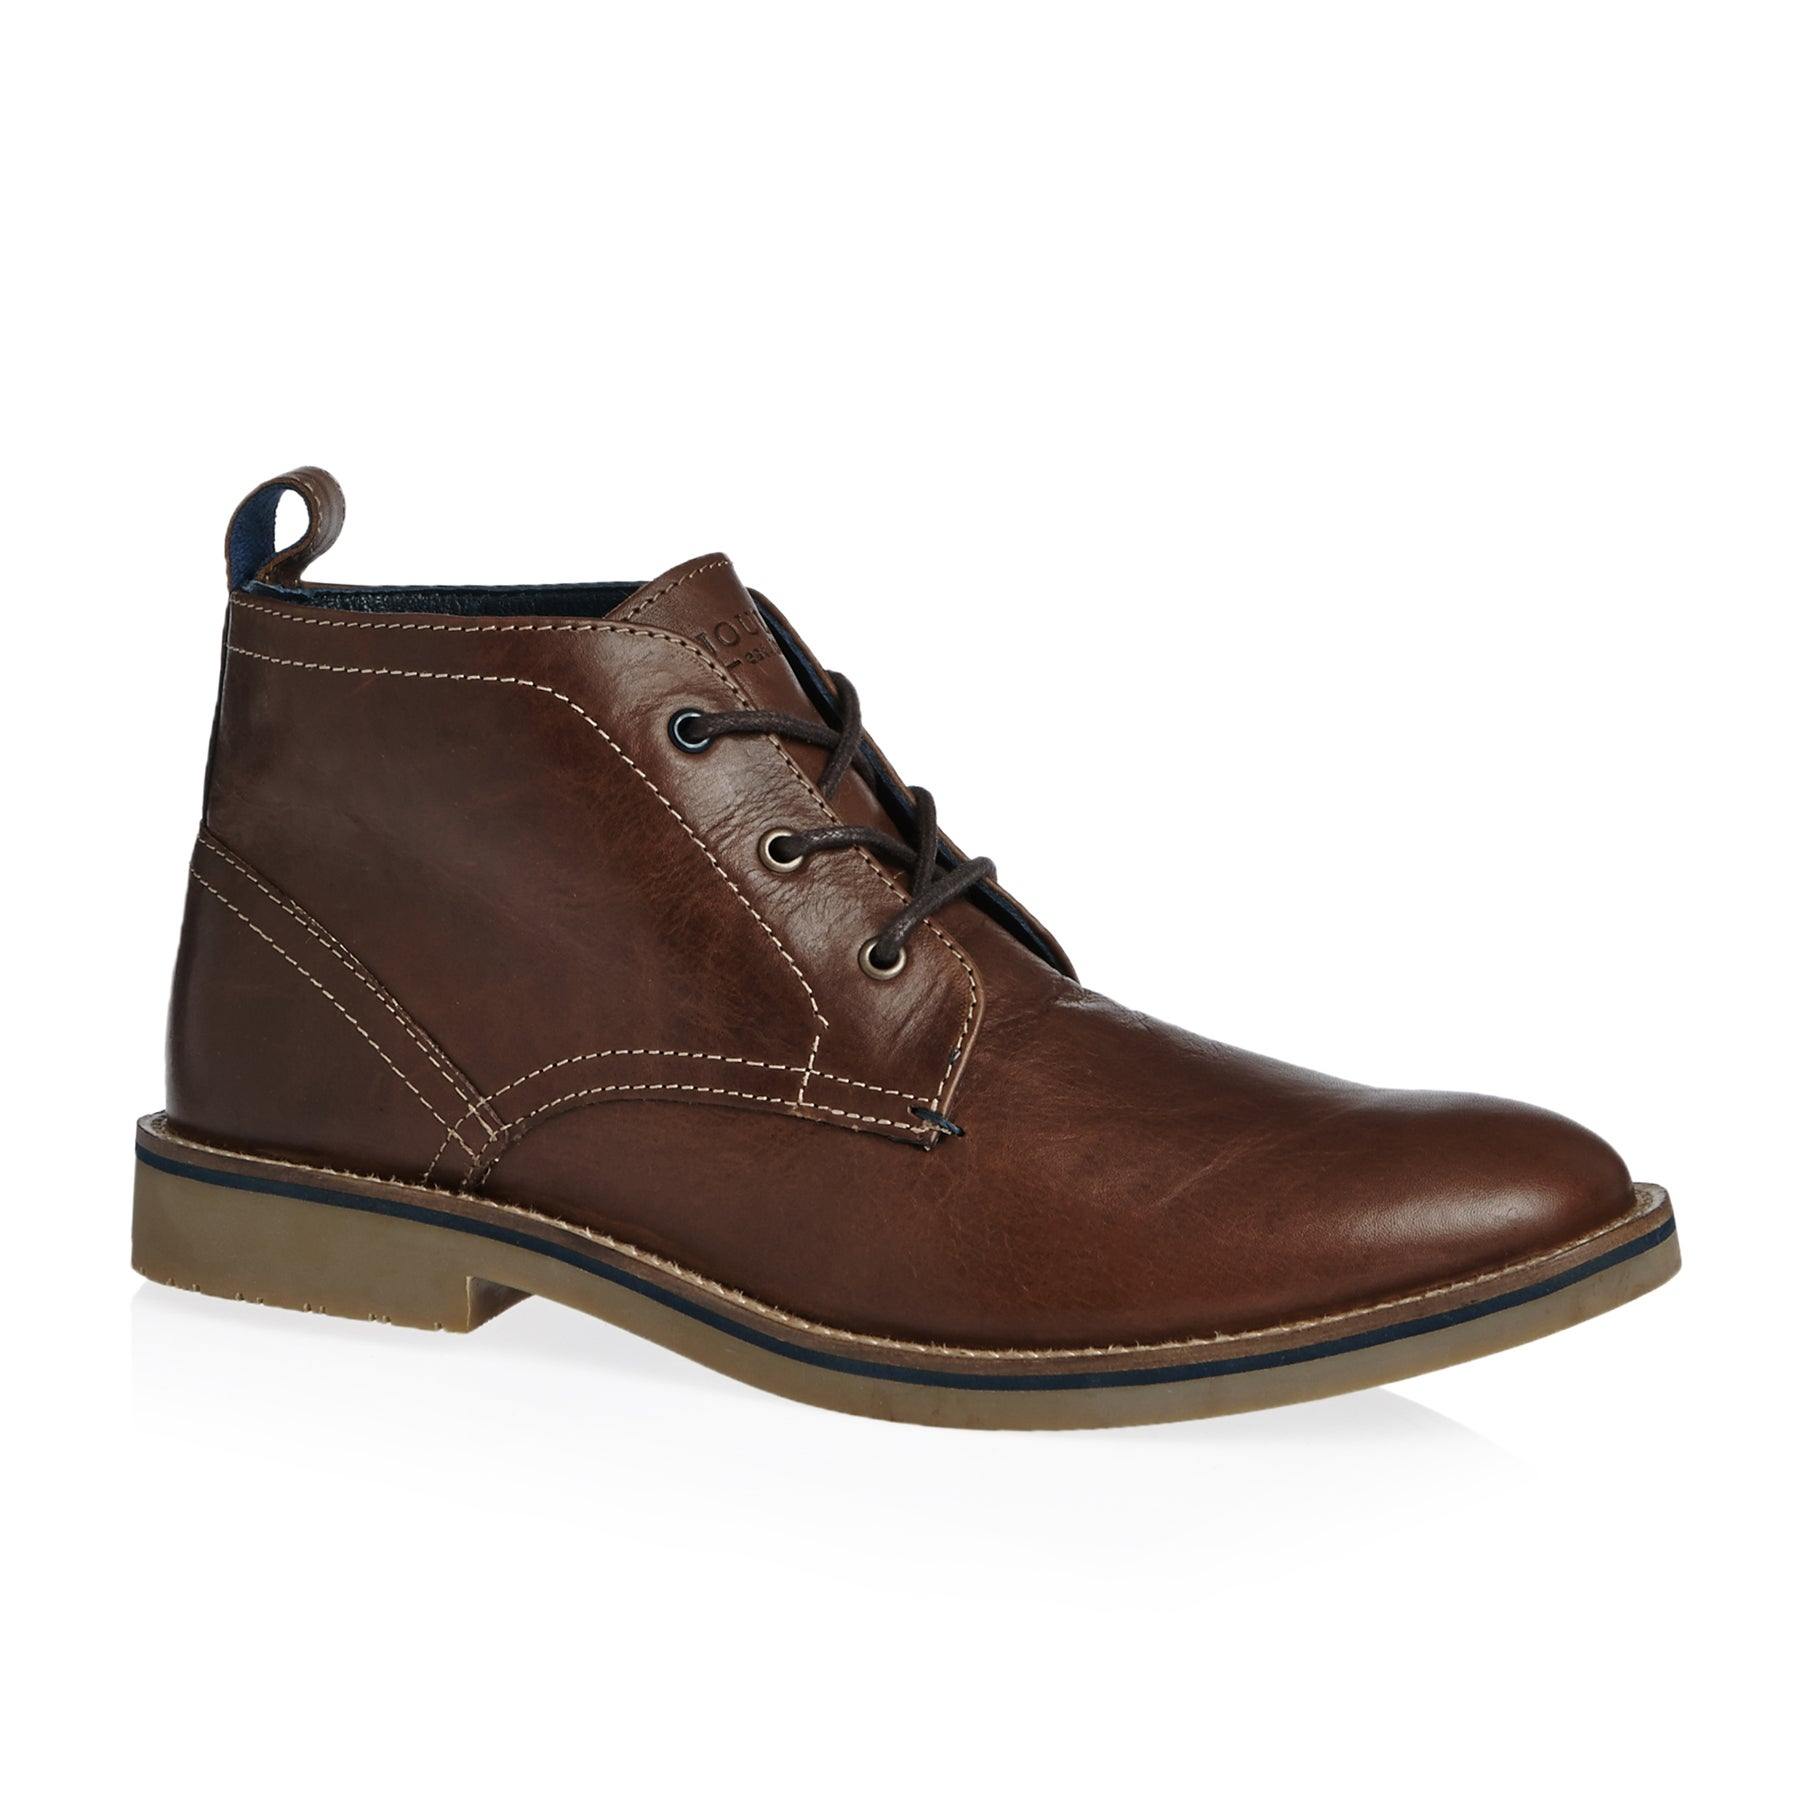 Joules Hyde Boots - Tan